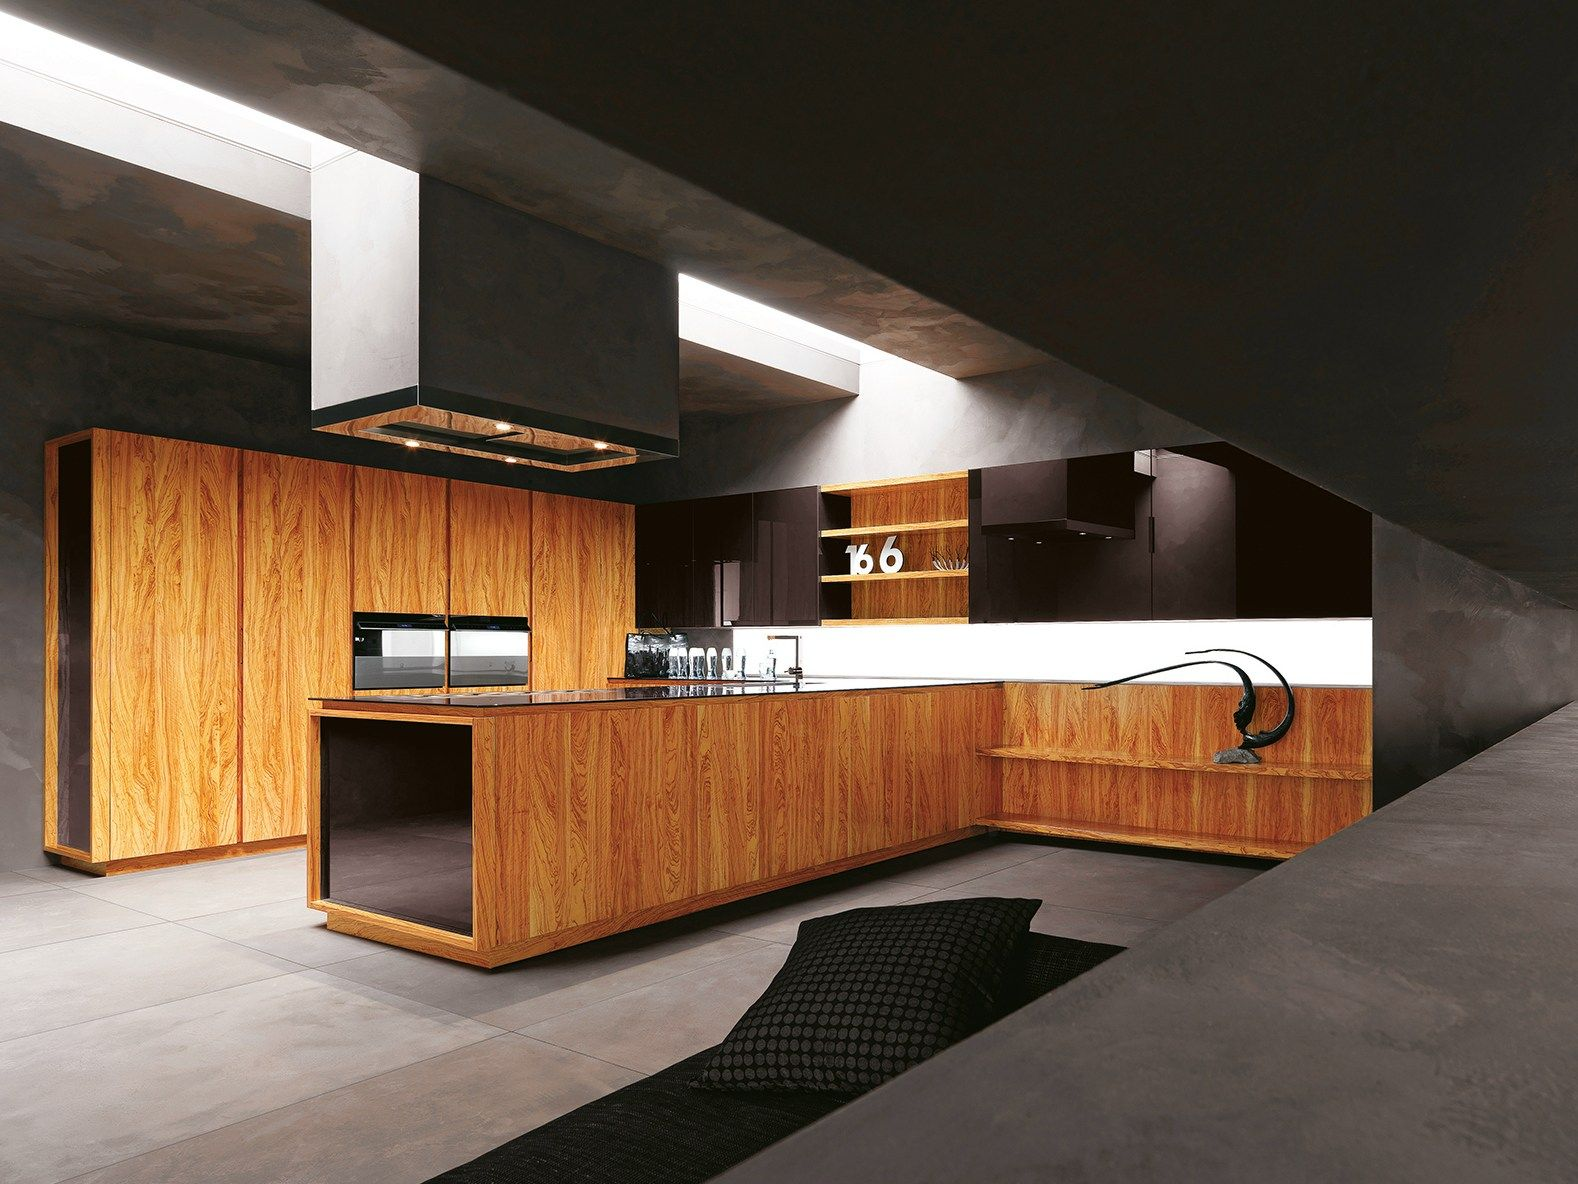 MORE OLIVE WOOD KITCHEN YARA VIP   COMPOSITION 2 BY CESAR ARREDAMENTI |  DESIGN GIAN VITTORIO